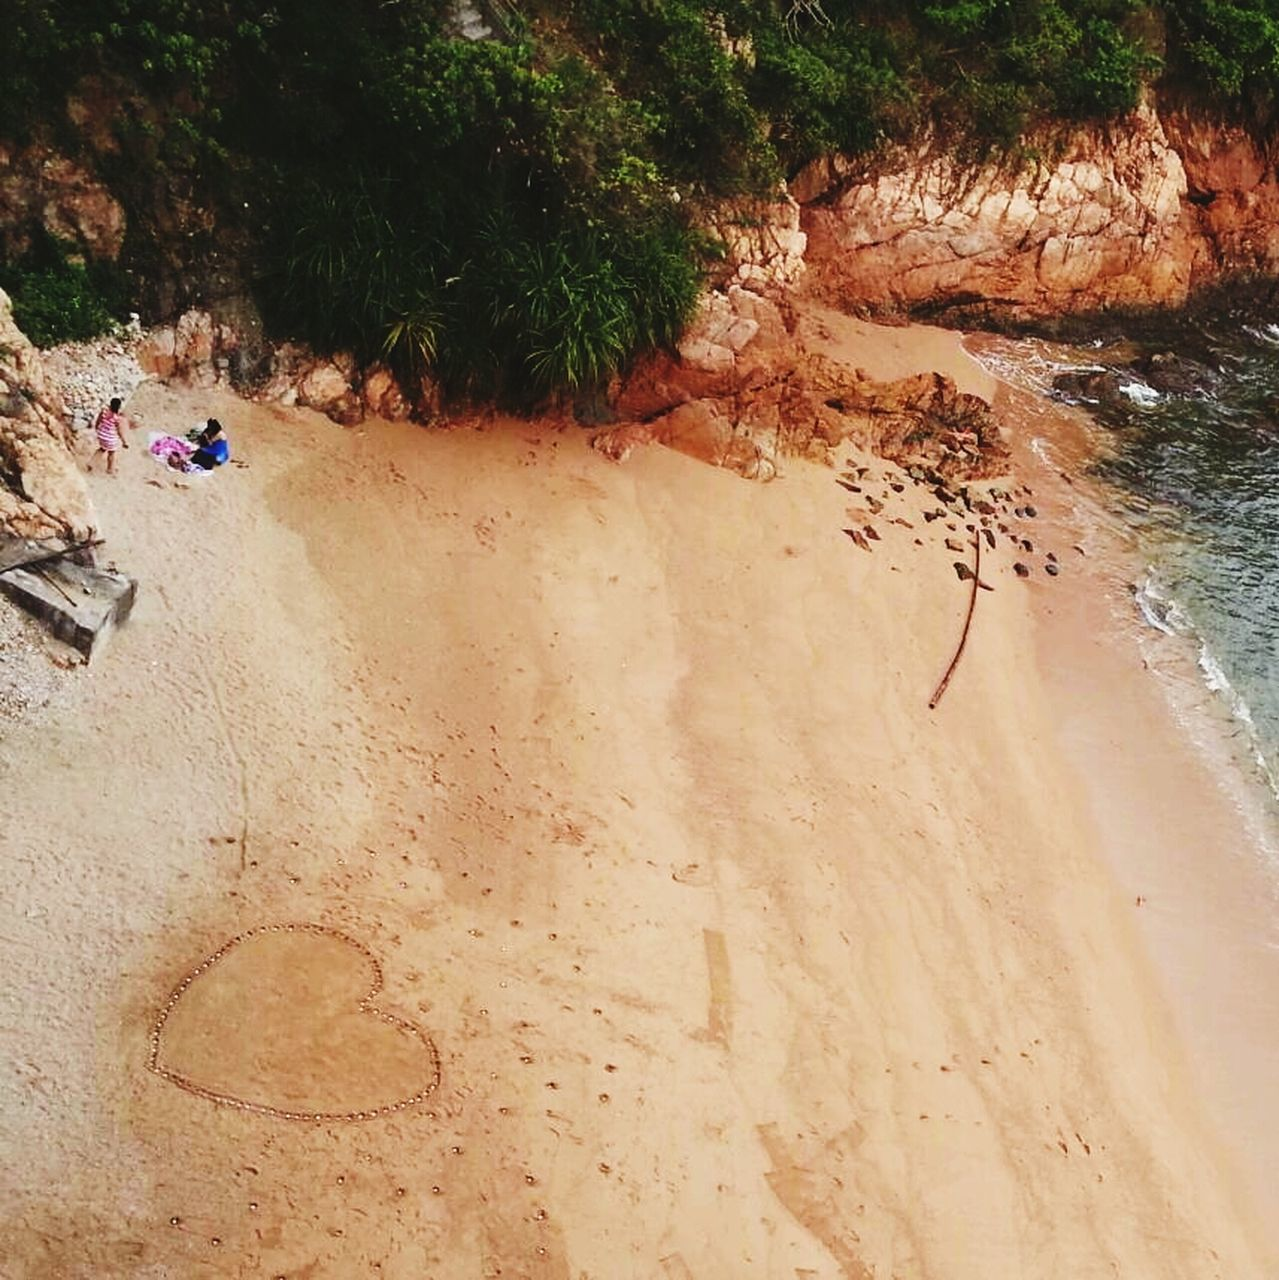 sand, nature, day, outdoors, beach, water, real people, beauty in nature, tree, one person, people